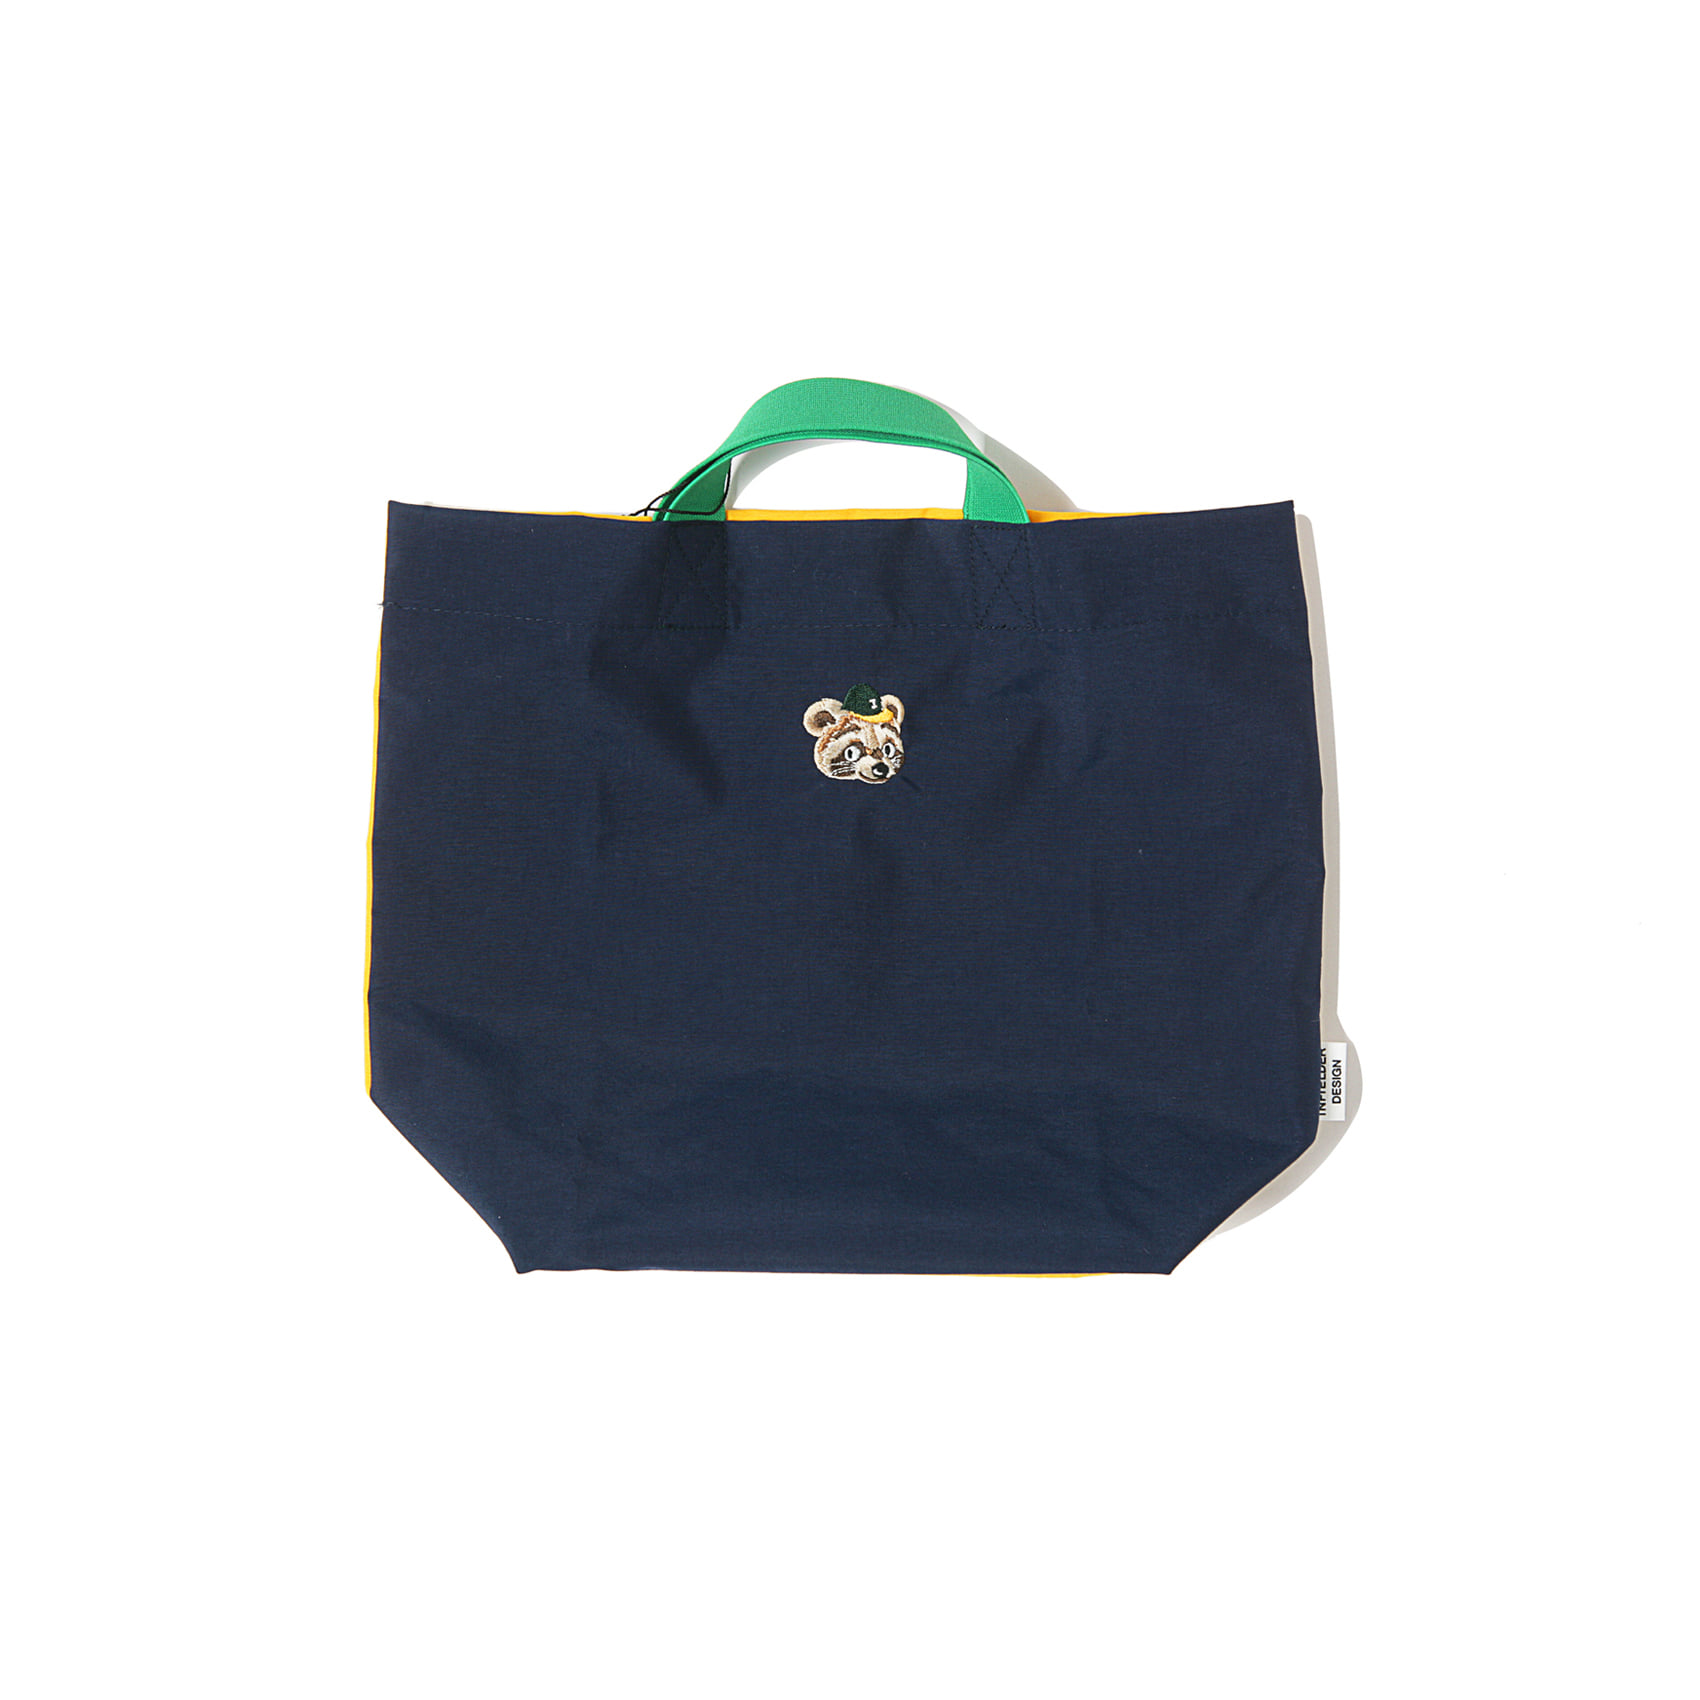 CHA CHA BAG - NAVY X YELLOW